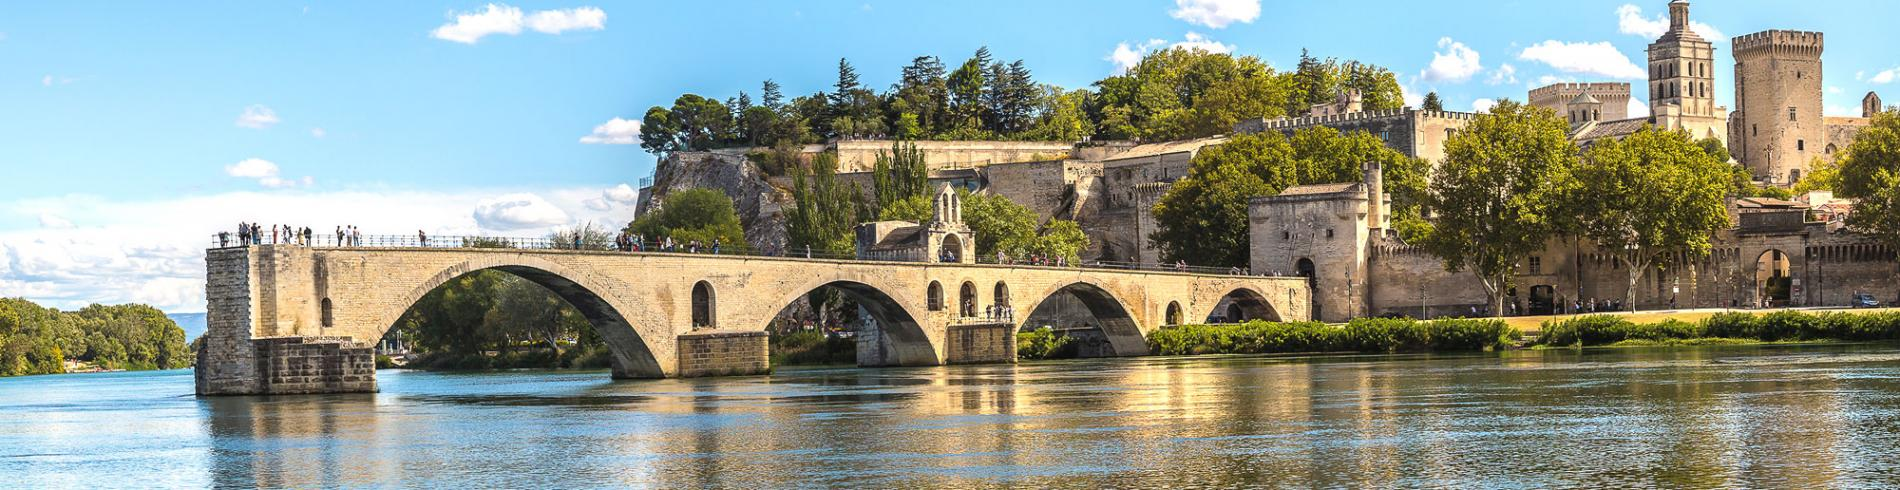 View of Avignon and the bridge from across the river